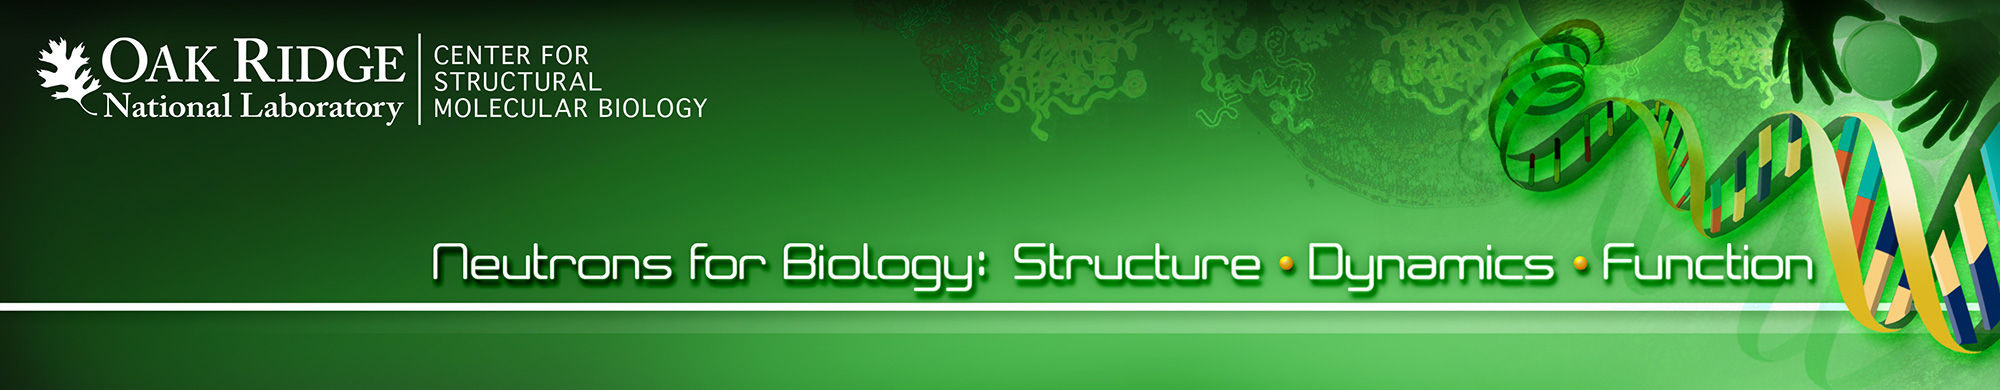 Neutons for Biology: Structure, Dynamics and Function